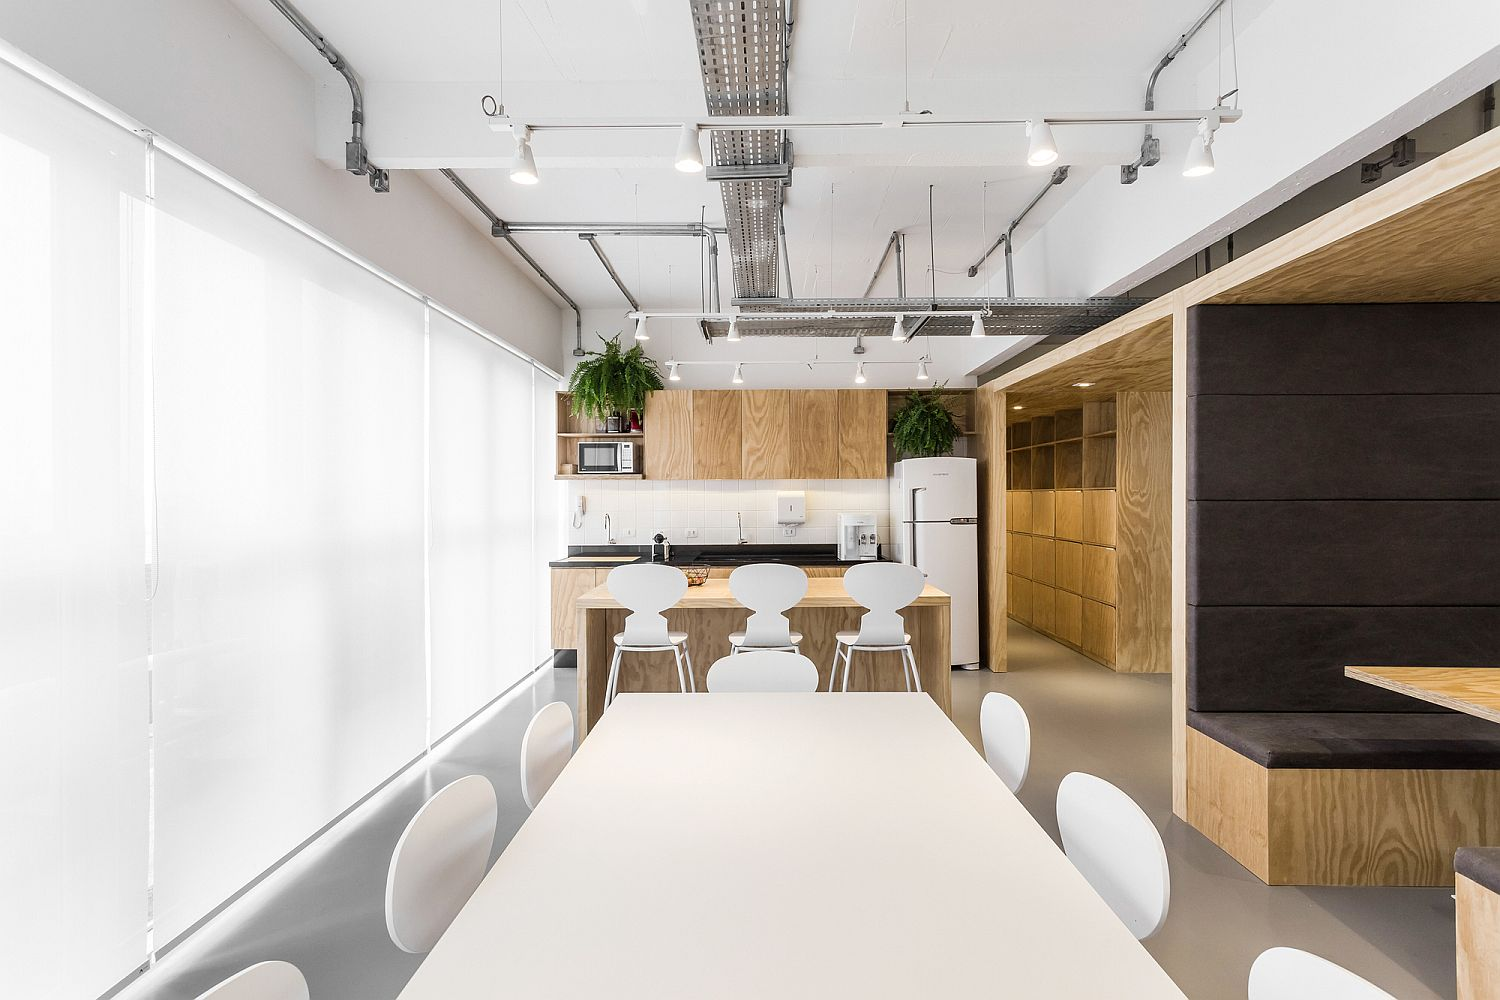 Gorgeous use of gray, white and wood inside the office